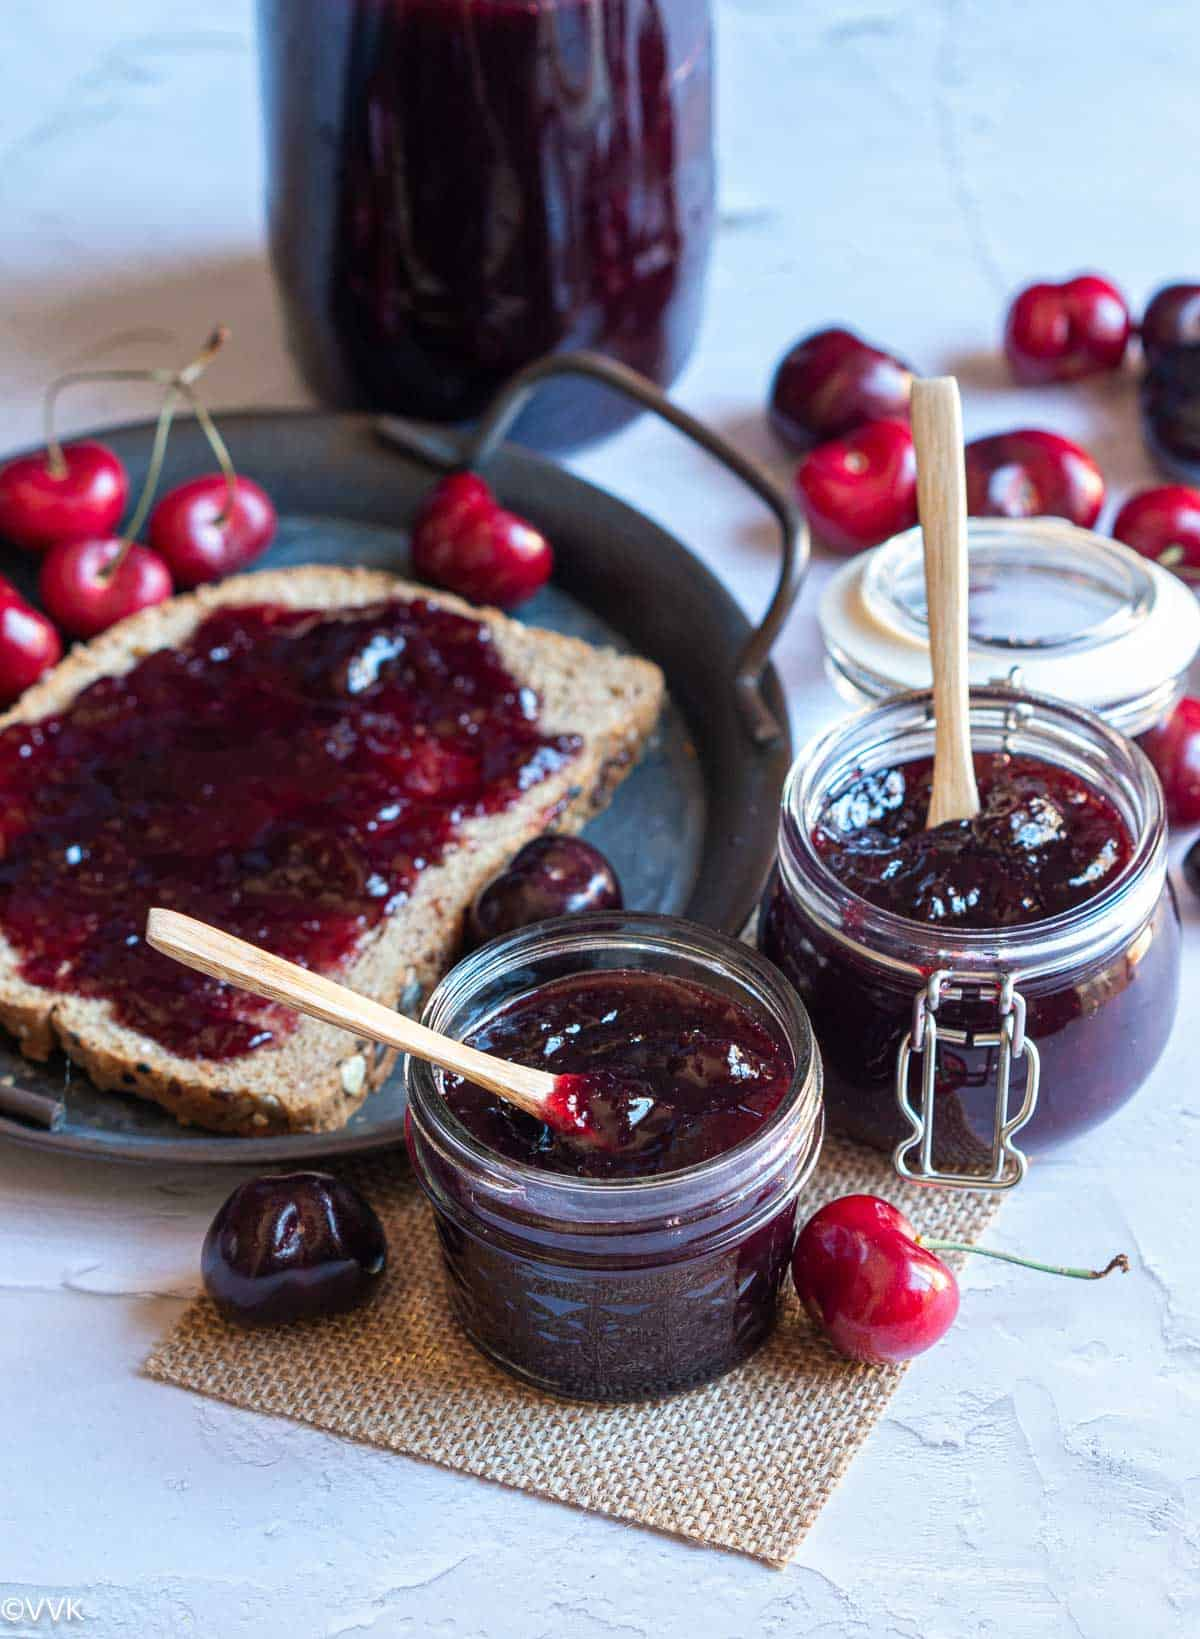 cherry jam stored in two bottles placed on burlap cloth and on the side bread is smeared with cherry jam